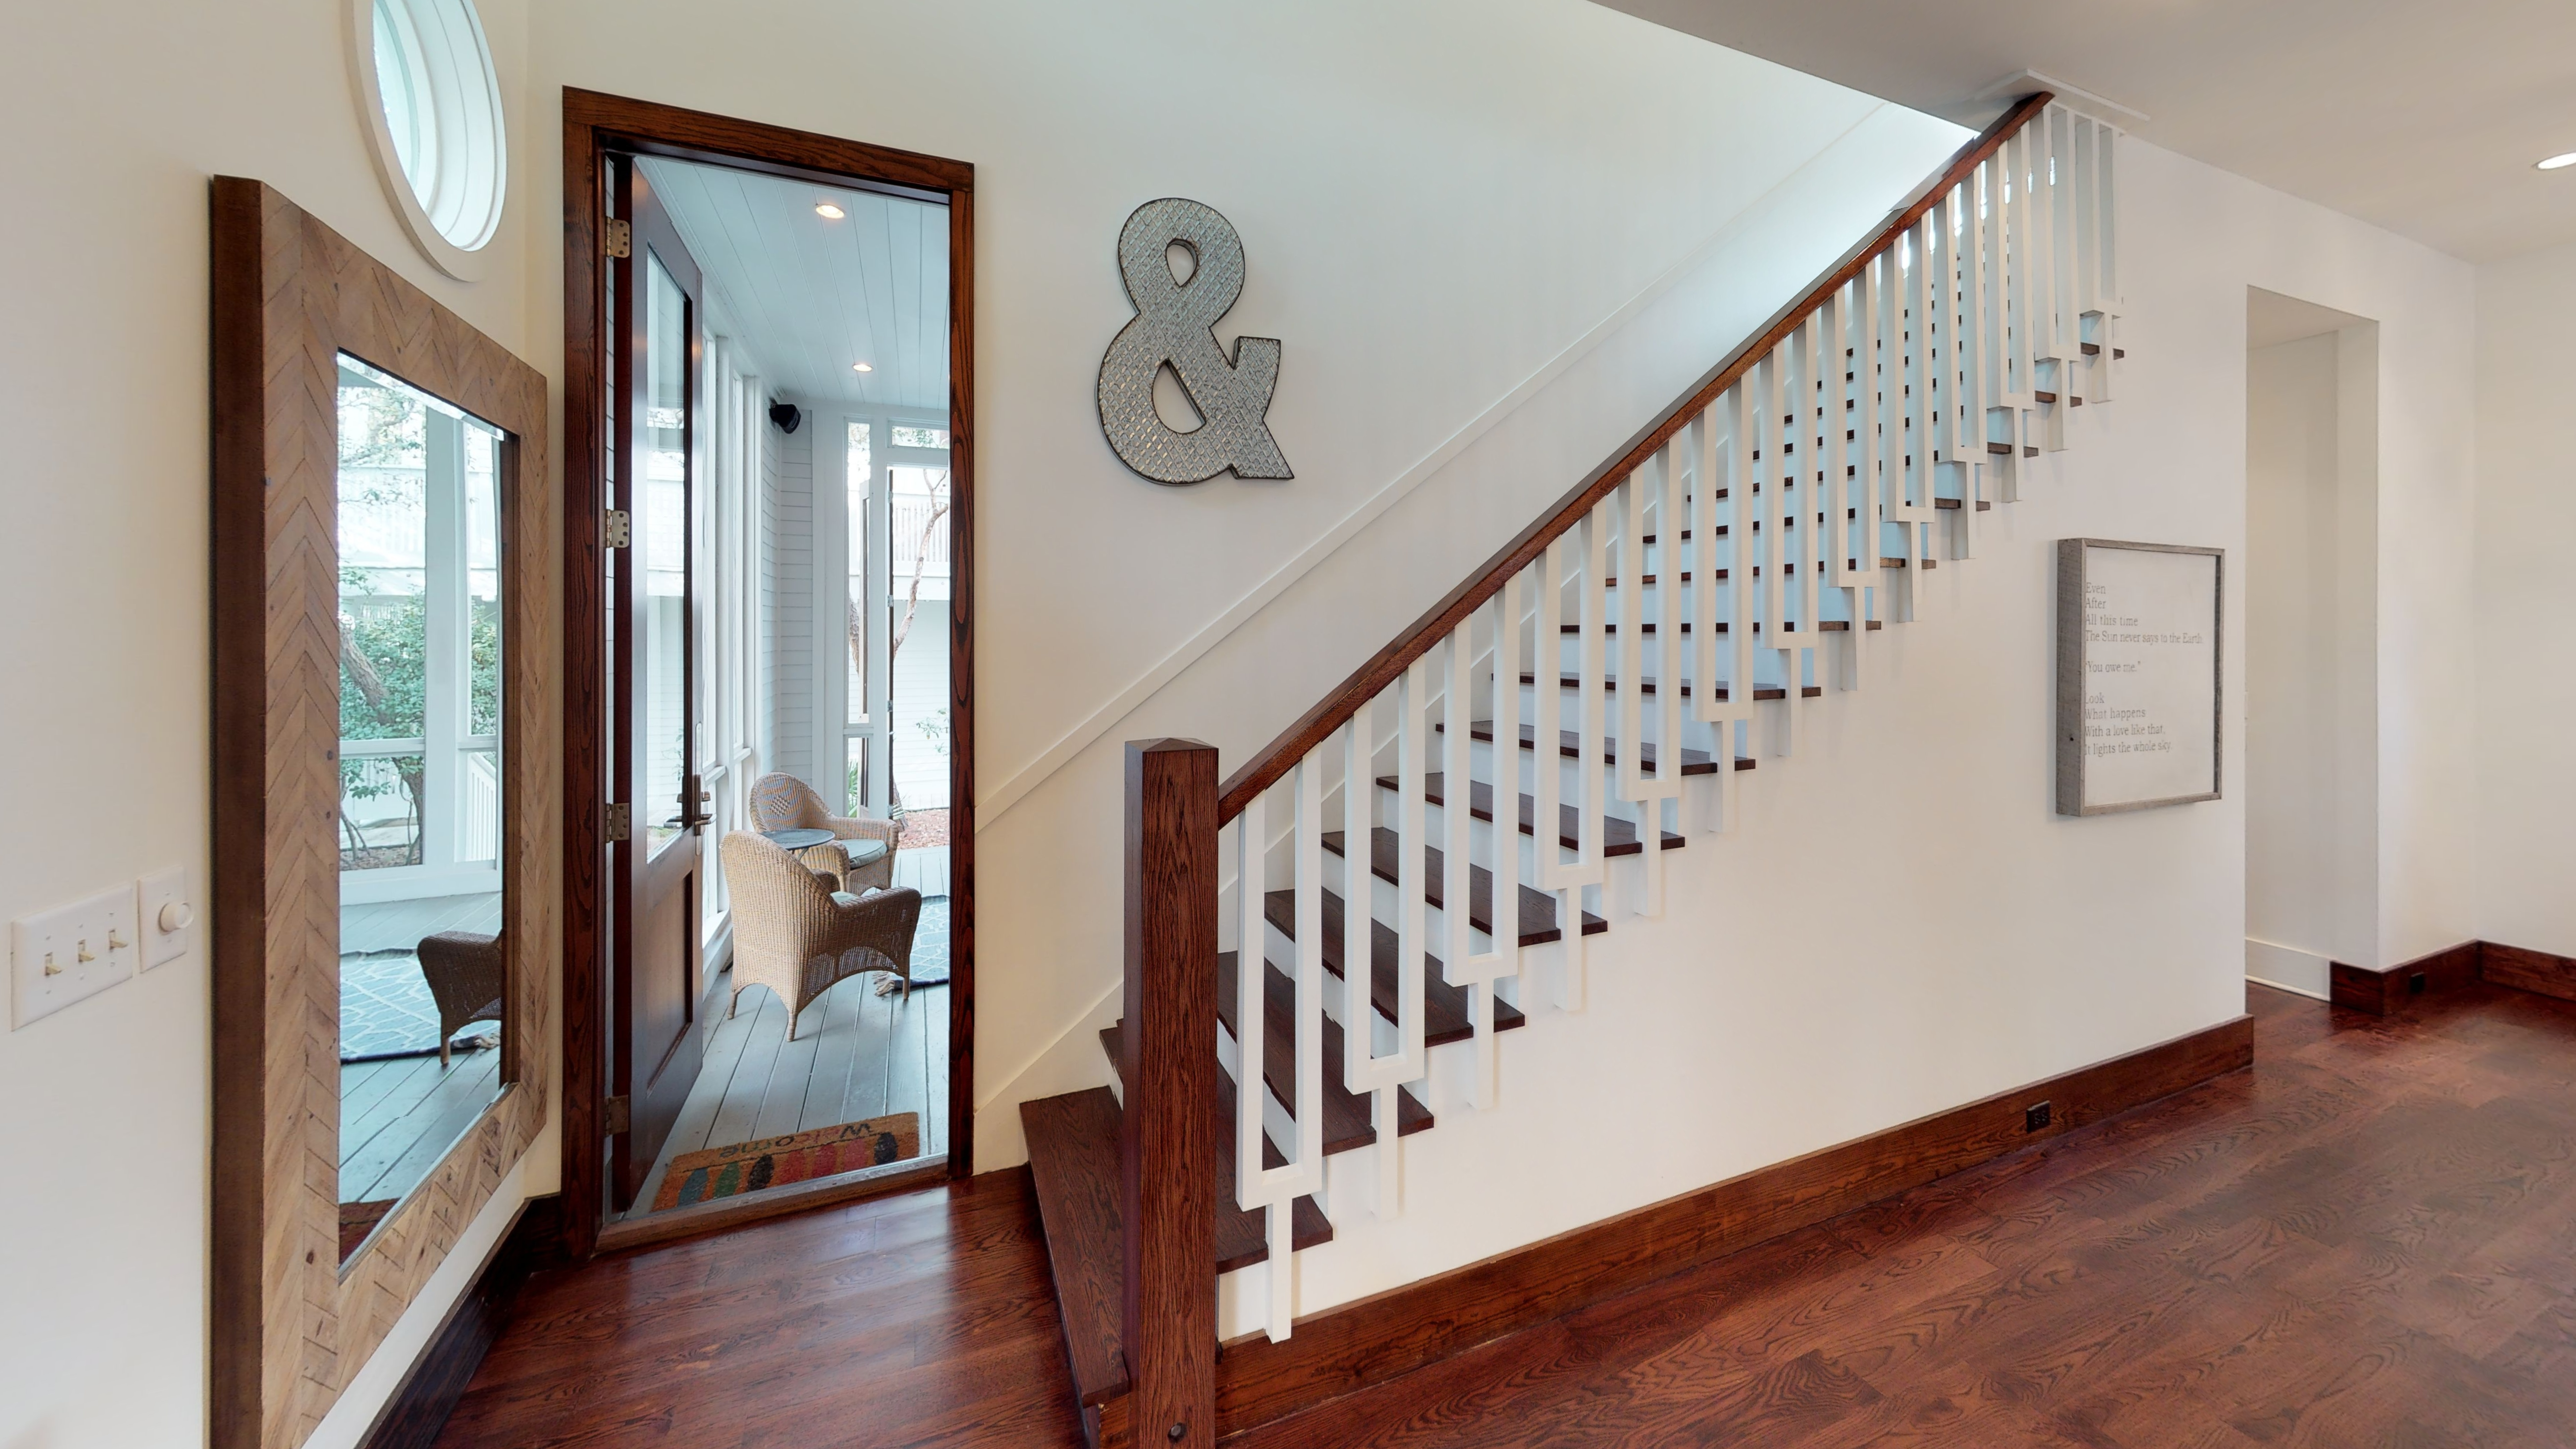 Staircase leading to the second floor